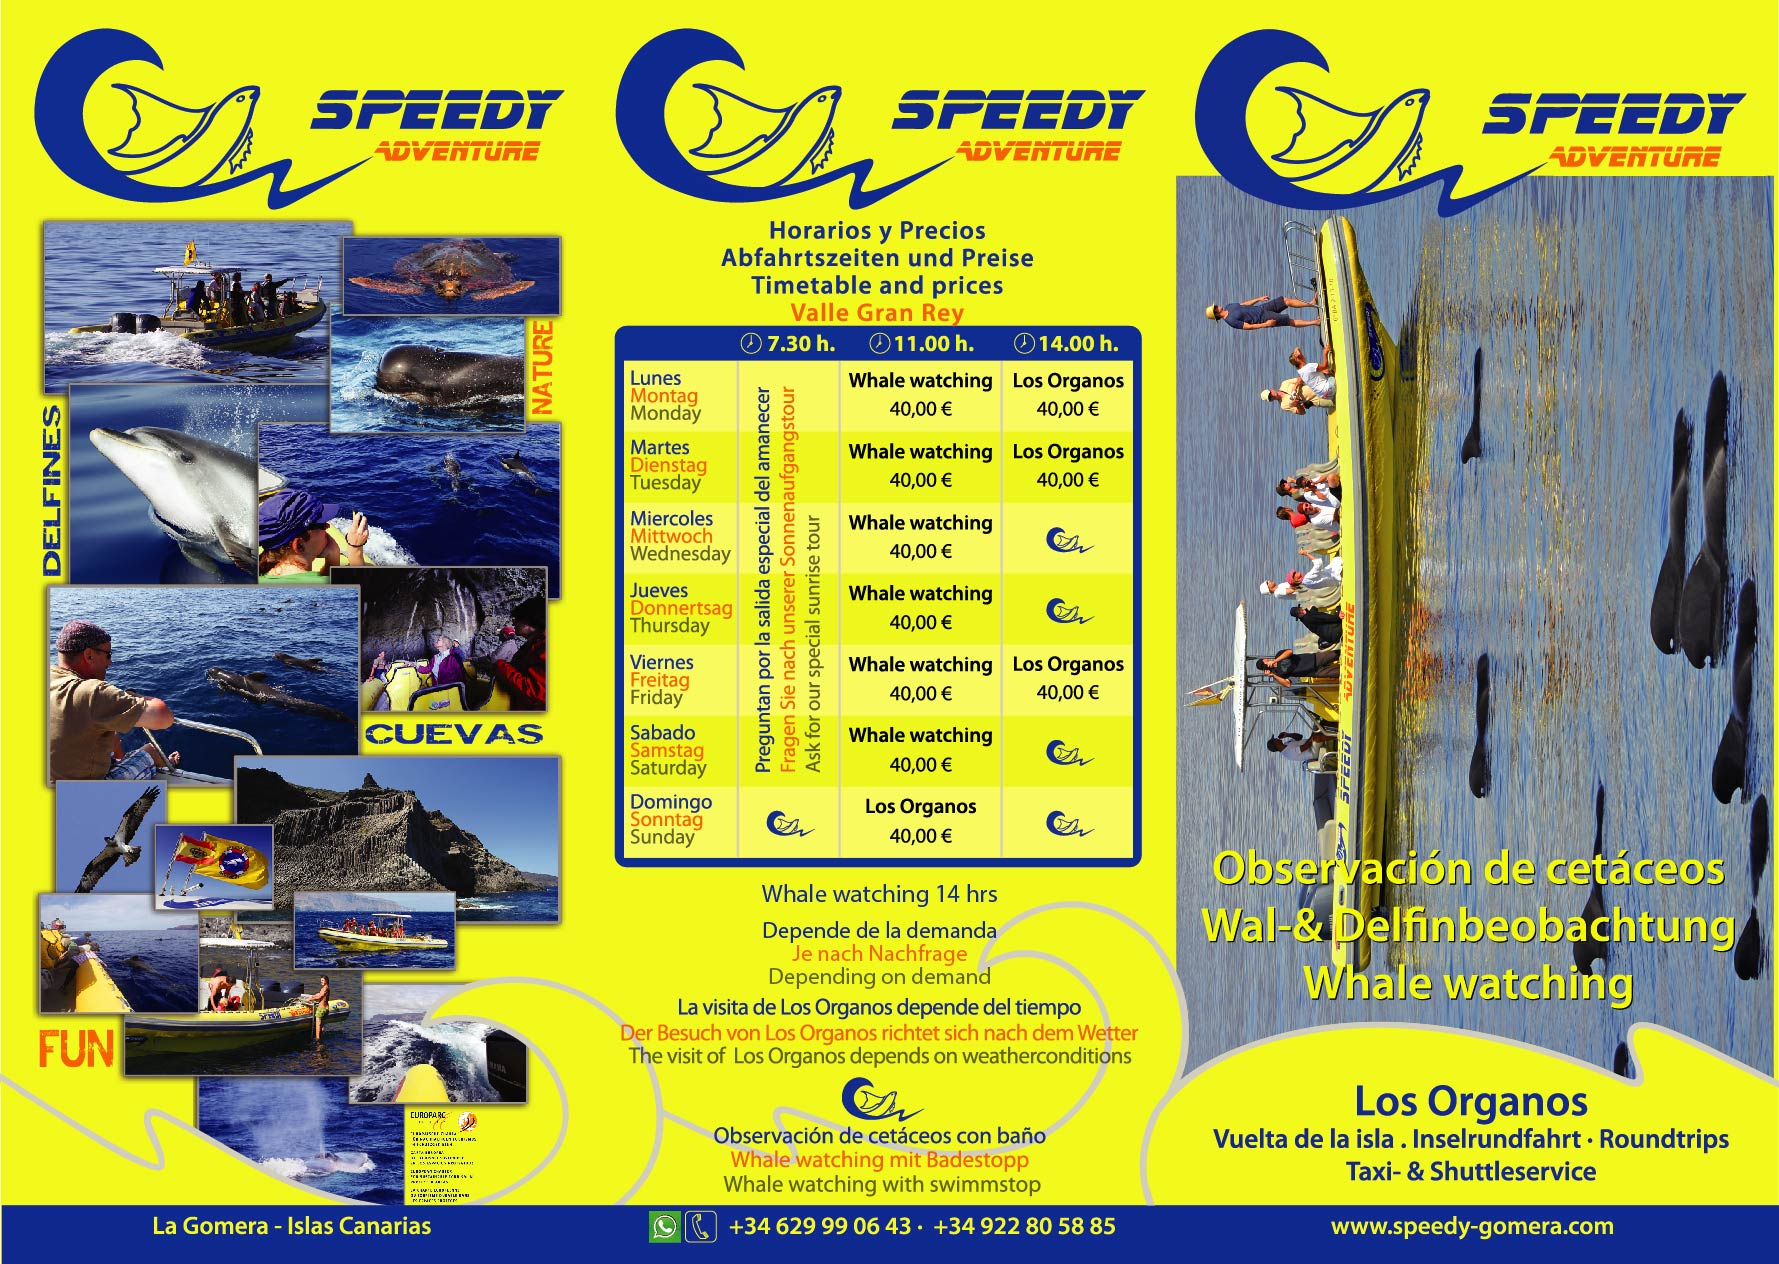 Actual Timetable: Speedy Adventure, La Gomera